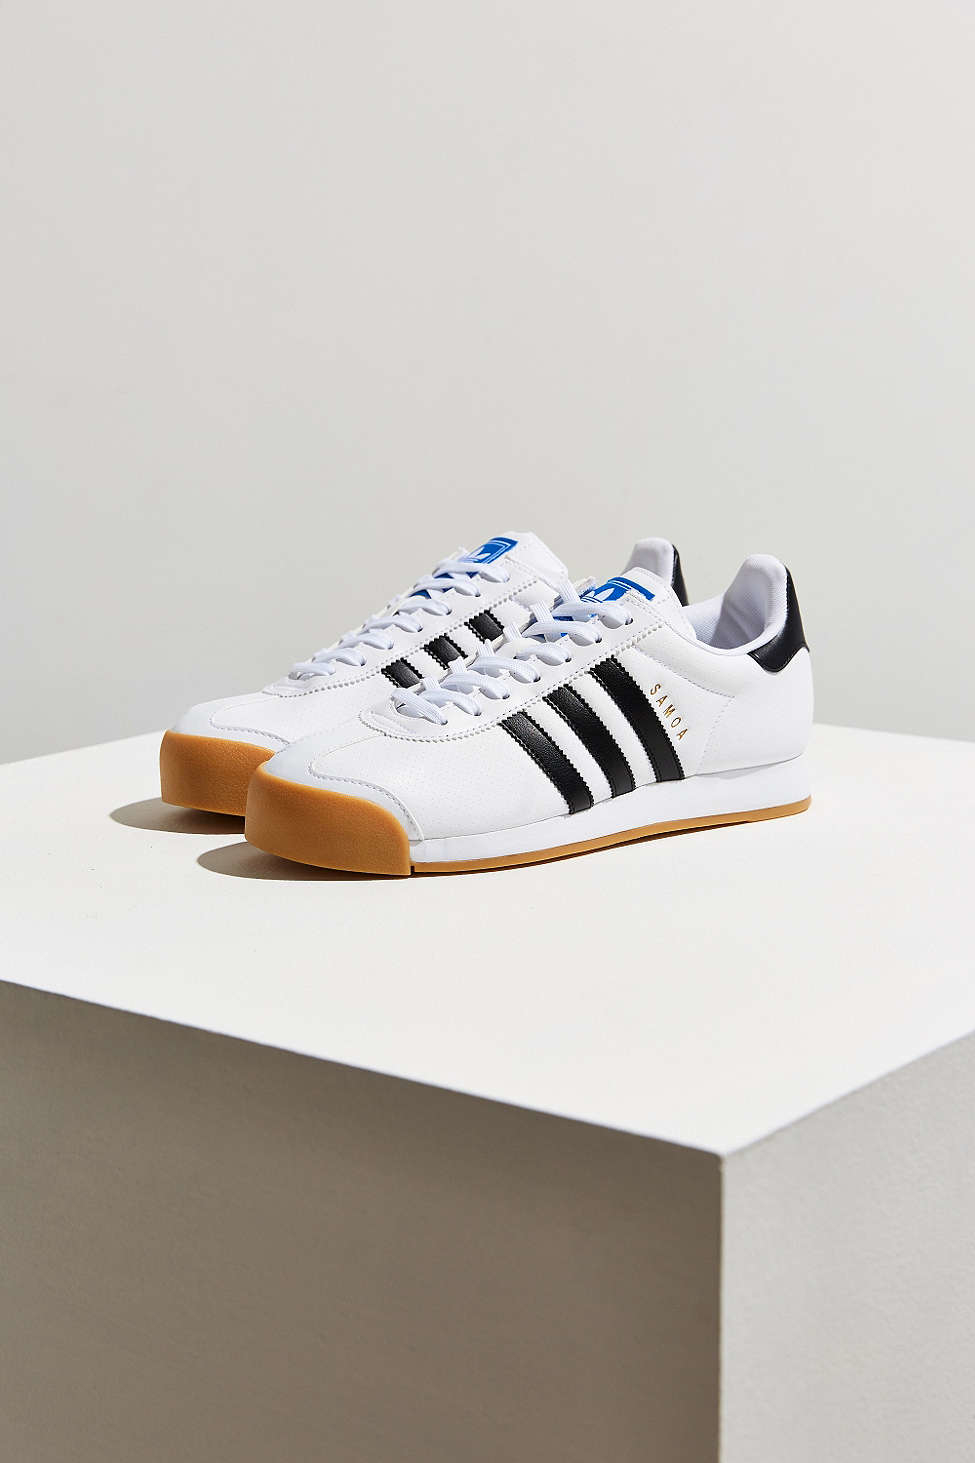 0ae47bf9a2b528 Lyst - adidas Originals Samoa Perforated Gum Sole Sneaker in White